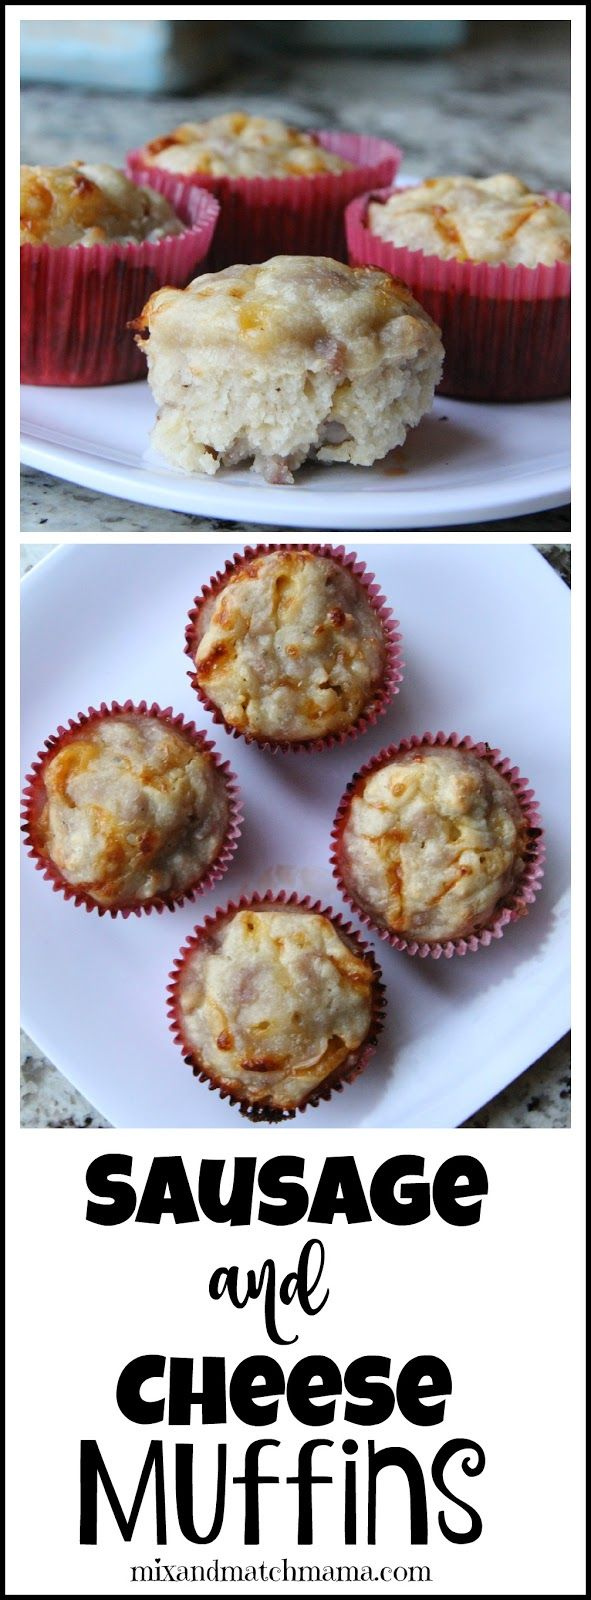 Sausage & Cheese Muffins!  So good for breakfast!  They taste like a classic sausage ball!